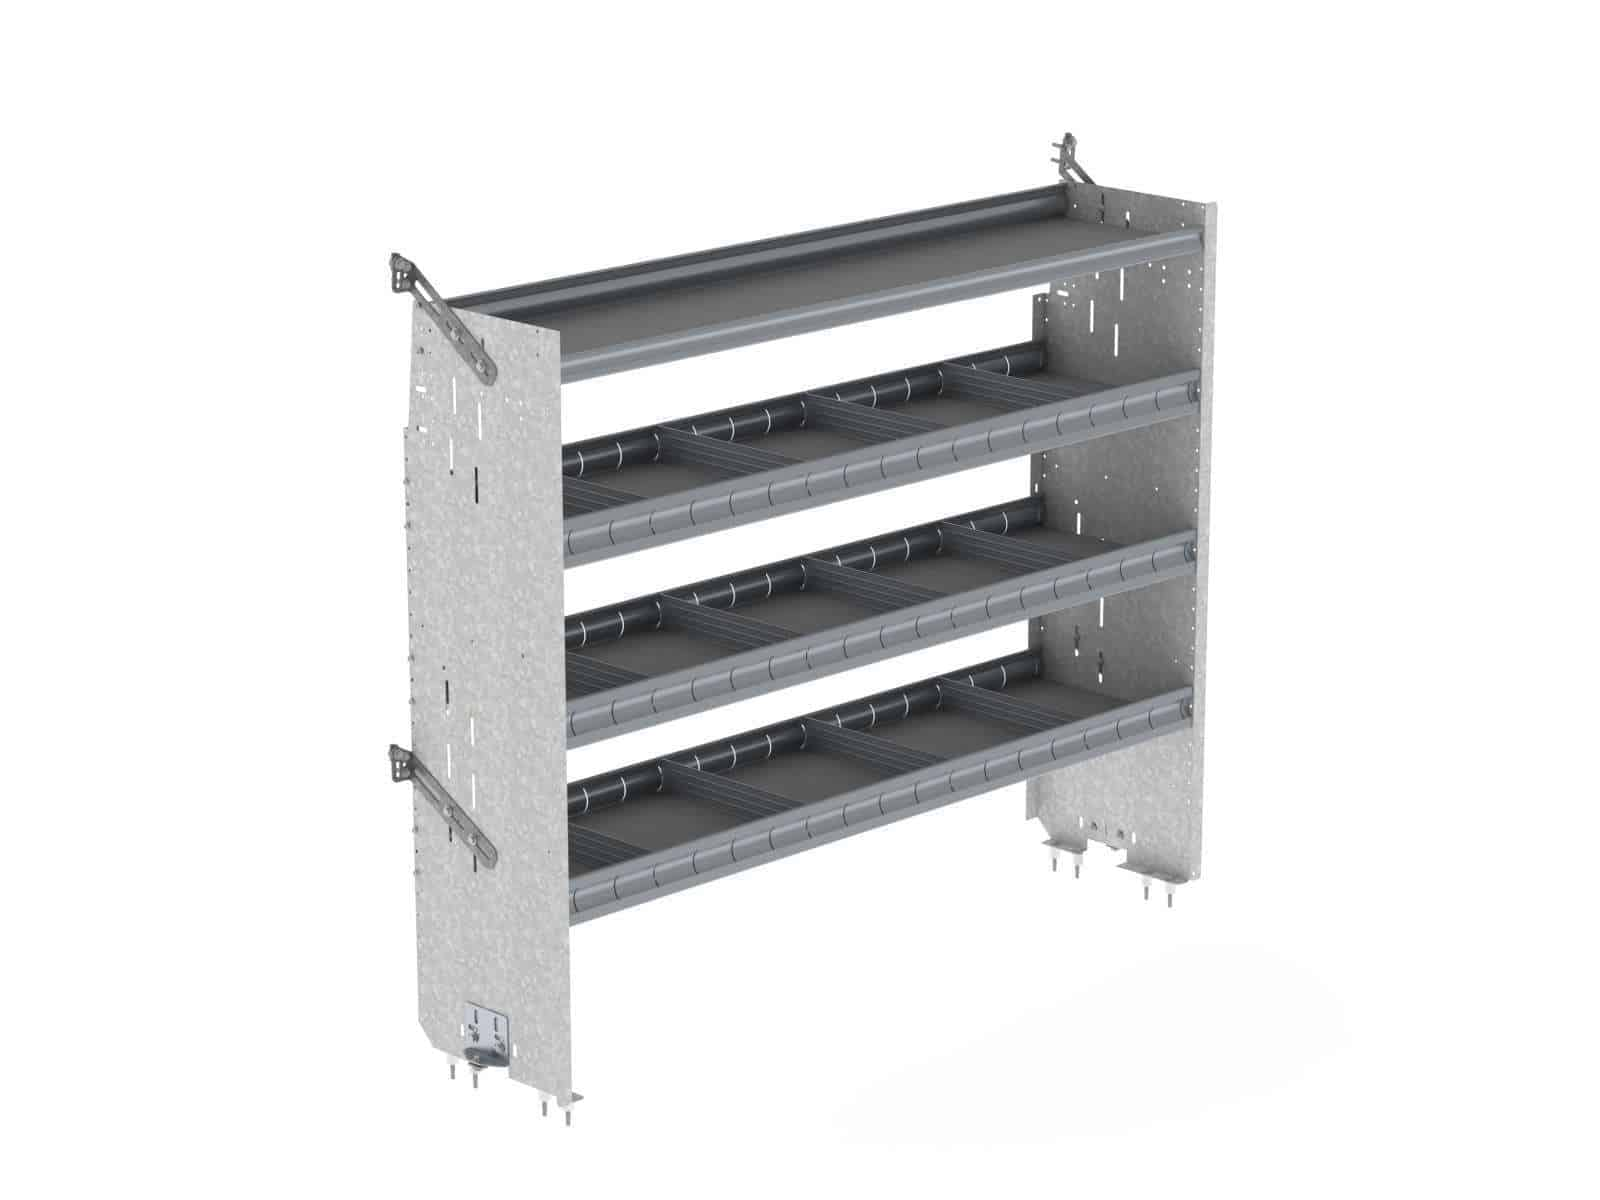 Ford-Transit-Shelving-System-HR-Square-Back-Deep-Also-Fits-Sprinter-ProMaster-NV-F70-T